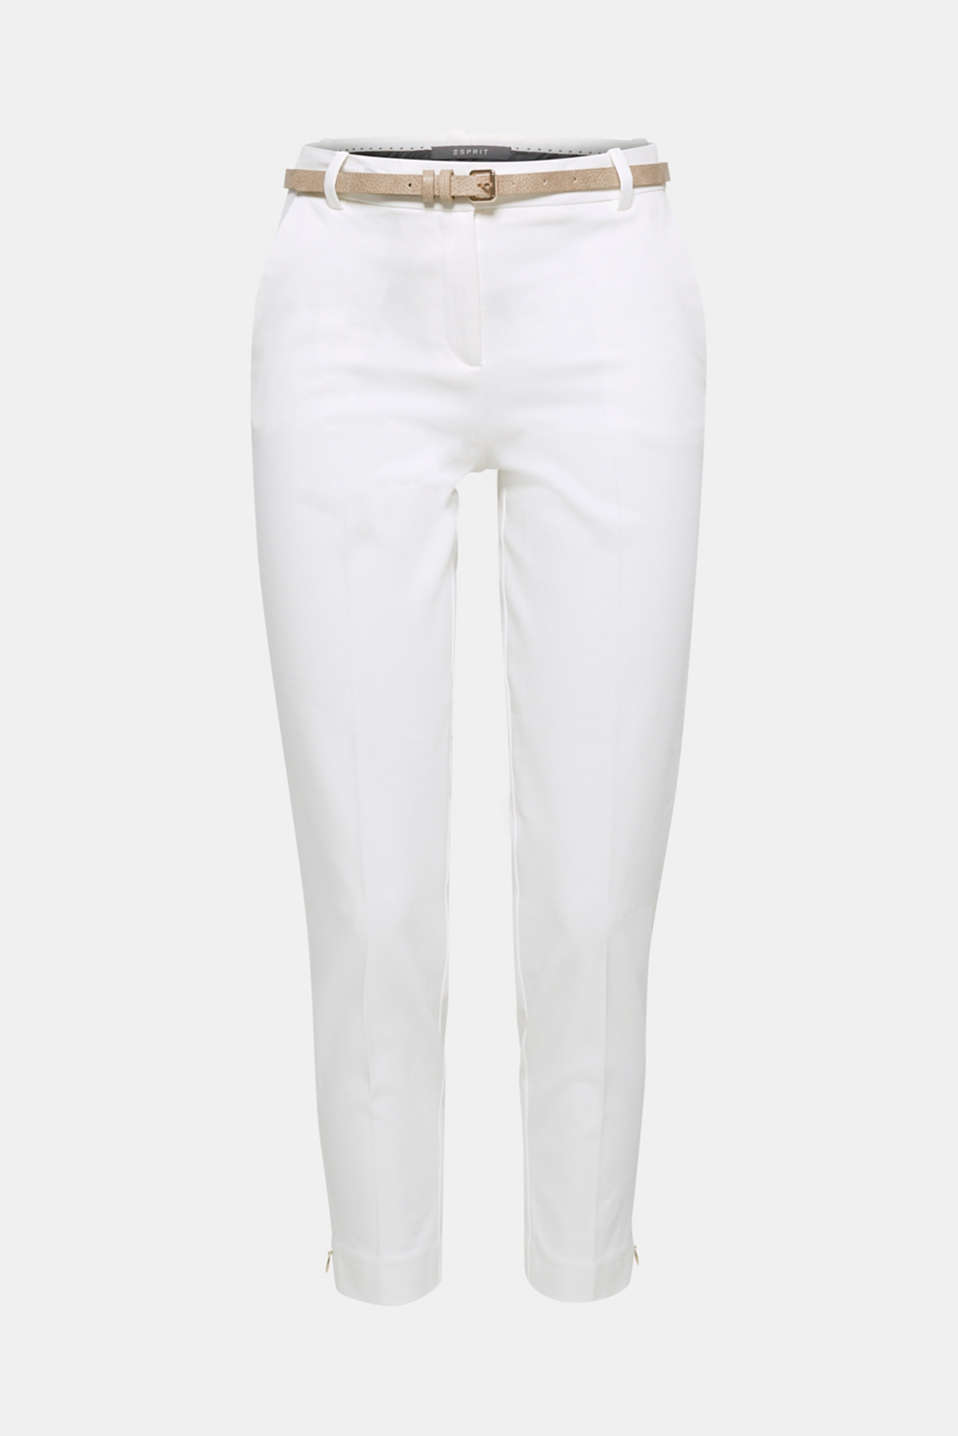 These cropped piqué trousers with added stretch for comfort, narrow belt and side hem zips is summery and chic!